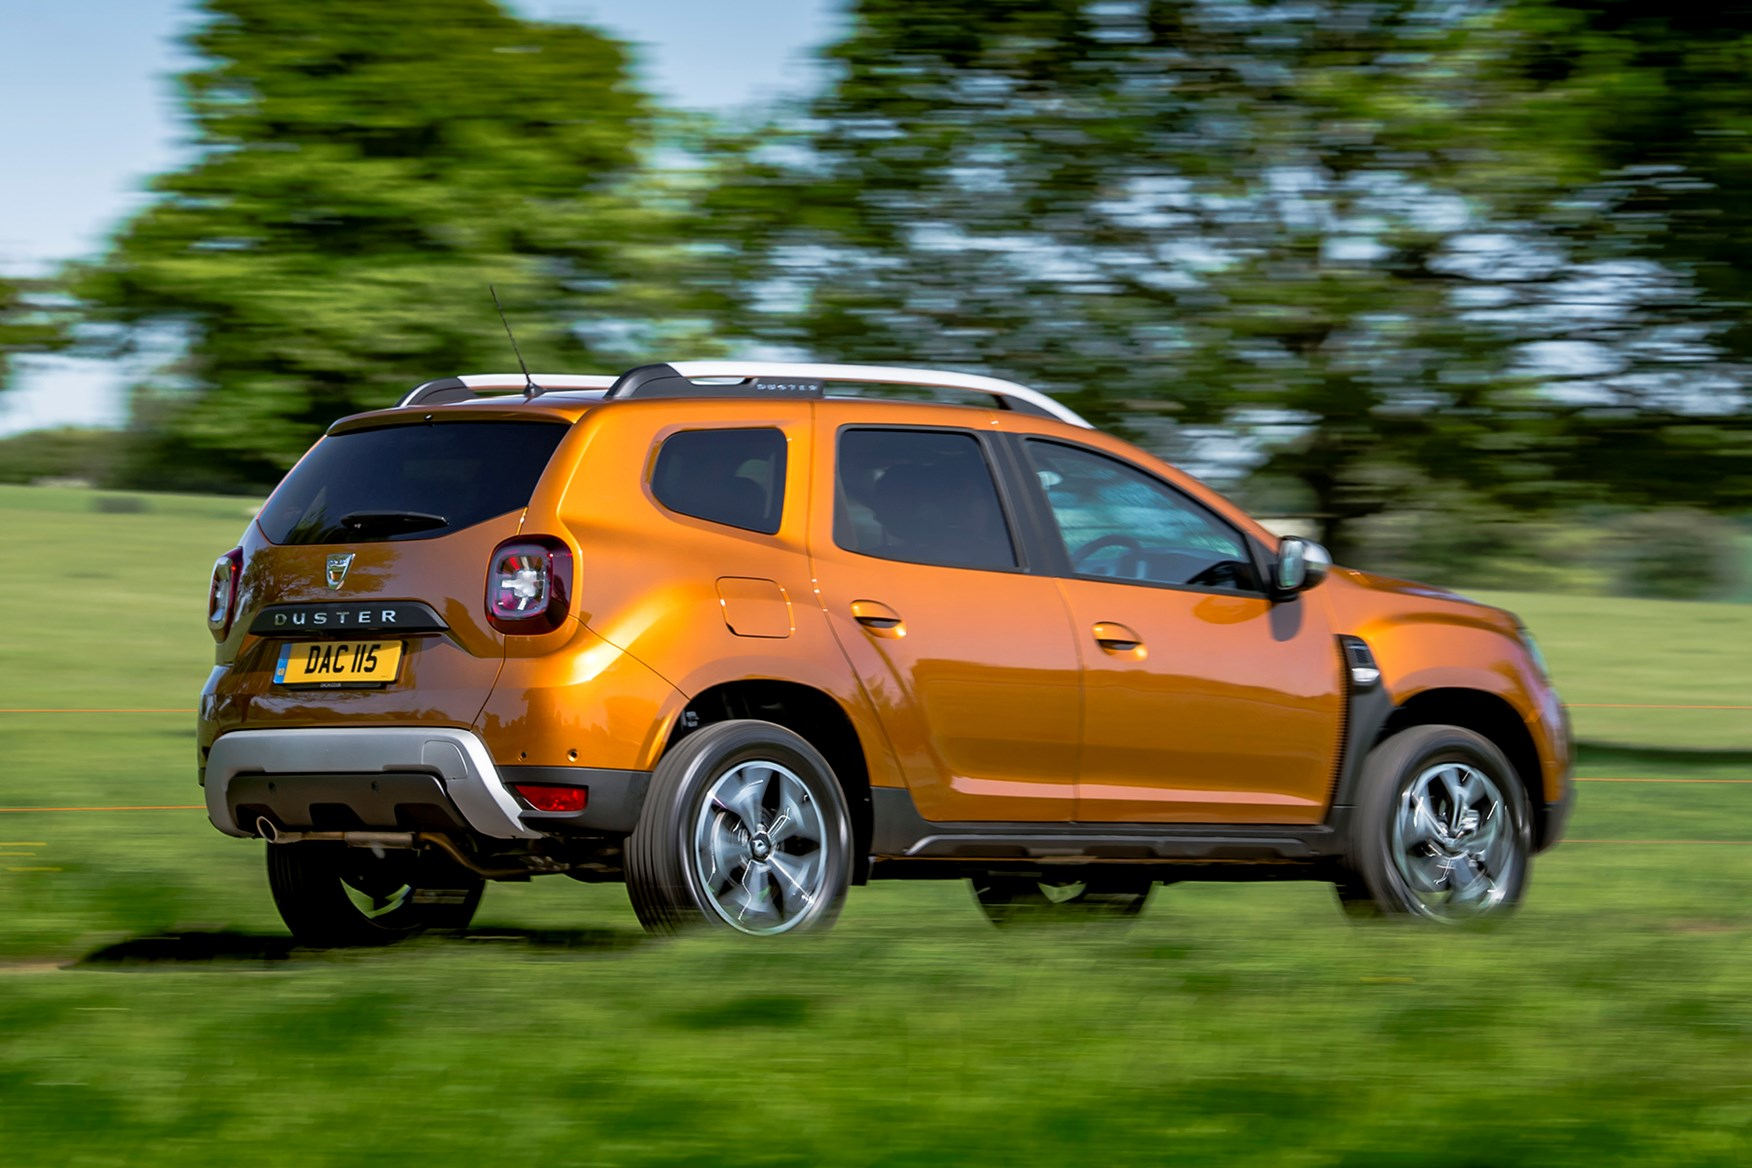 dacia duster suv review driving parkers. Black Bedroom Furniture Sets. Home Design Ideas